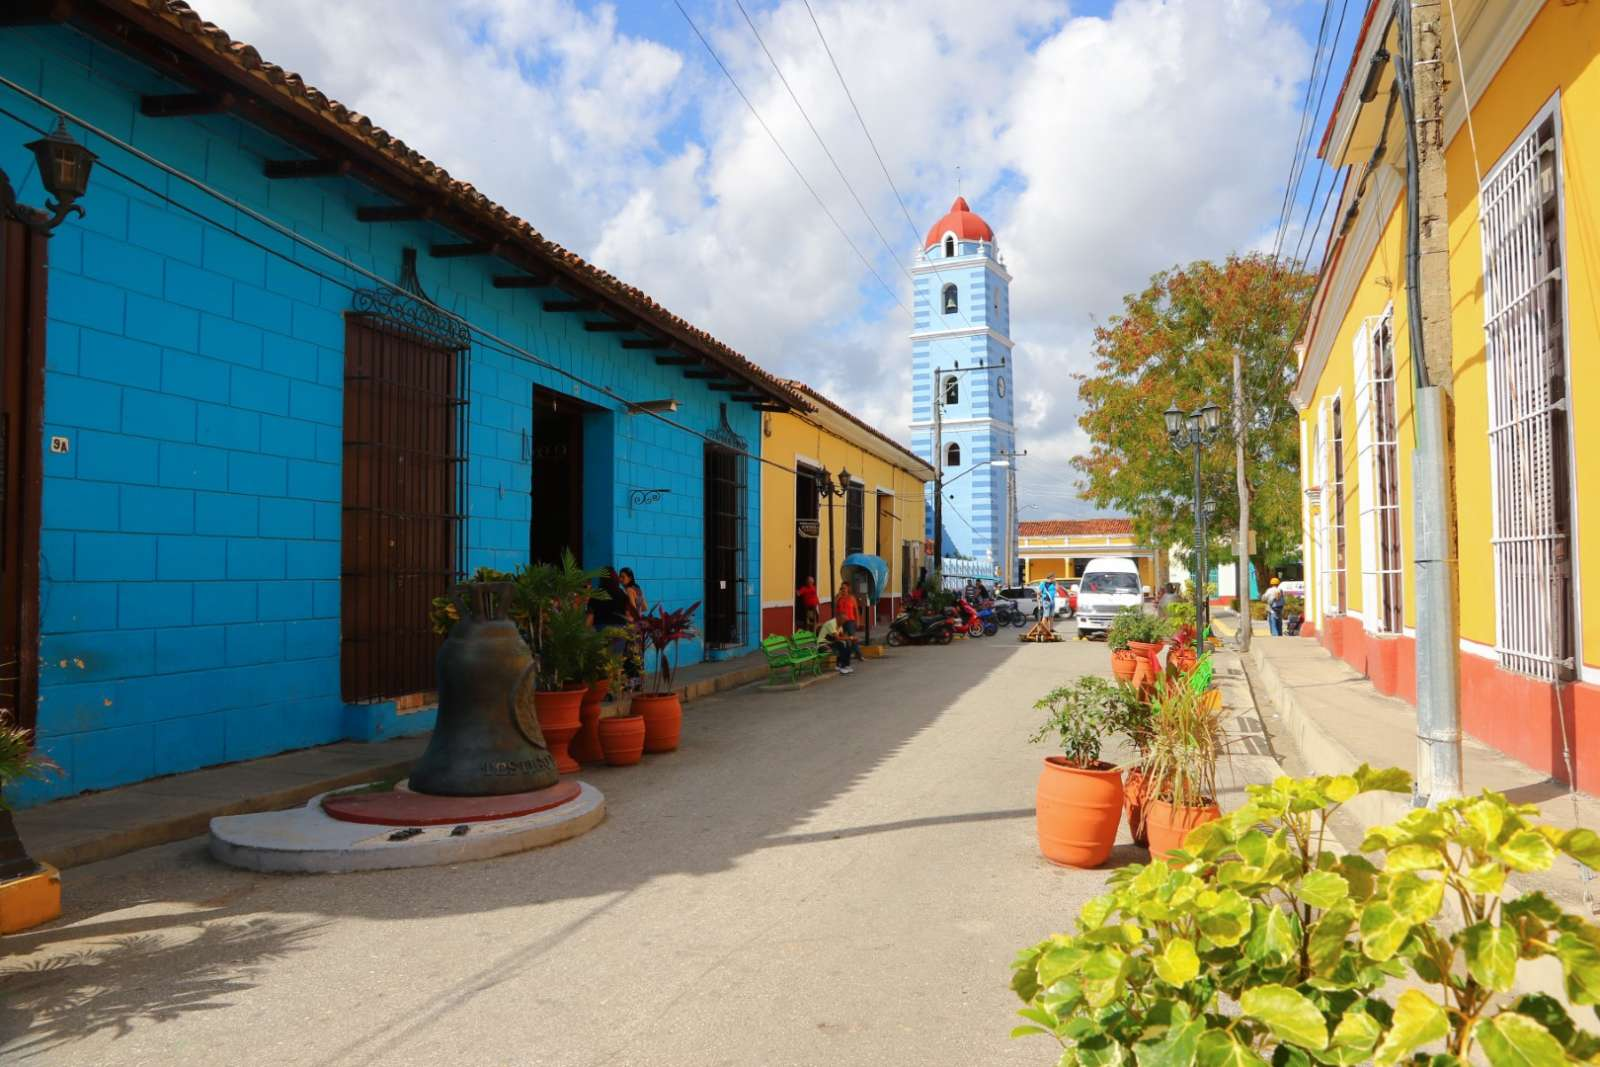 Colourful street leading to Parroquial Mayor in Sancti Spiritus, Cubaldest Church In Cuba In Sancti Spíritus